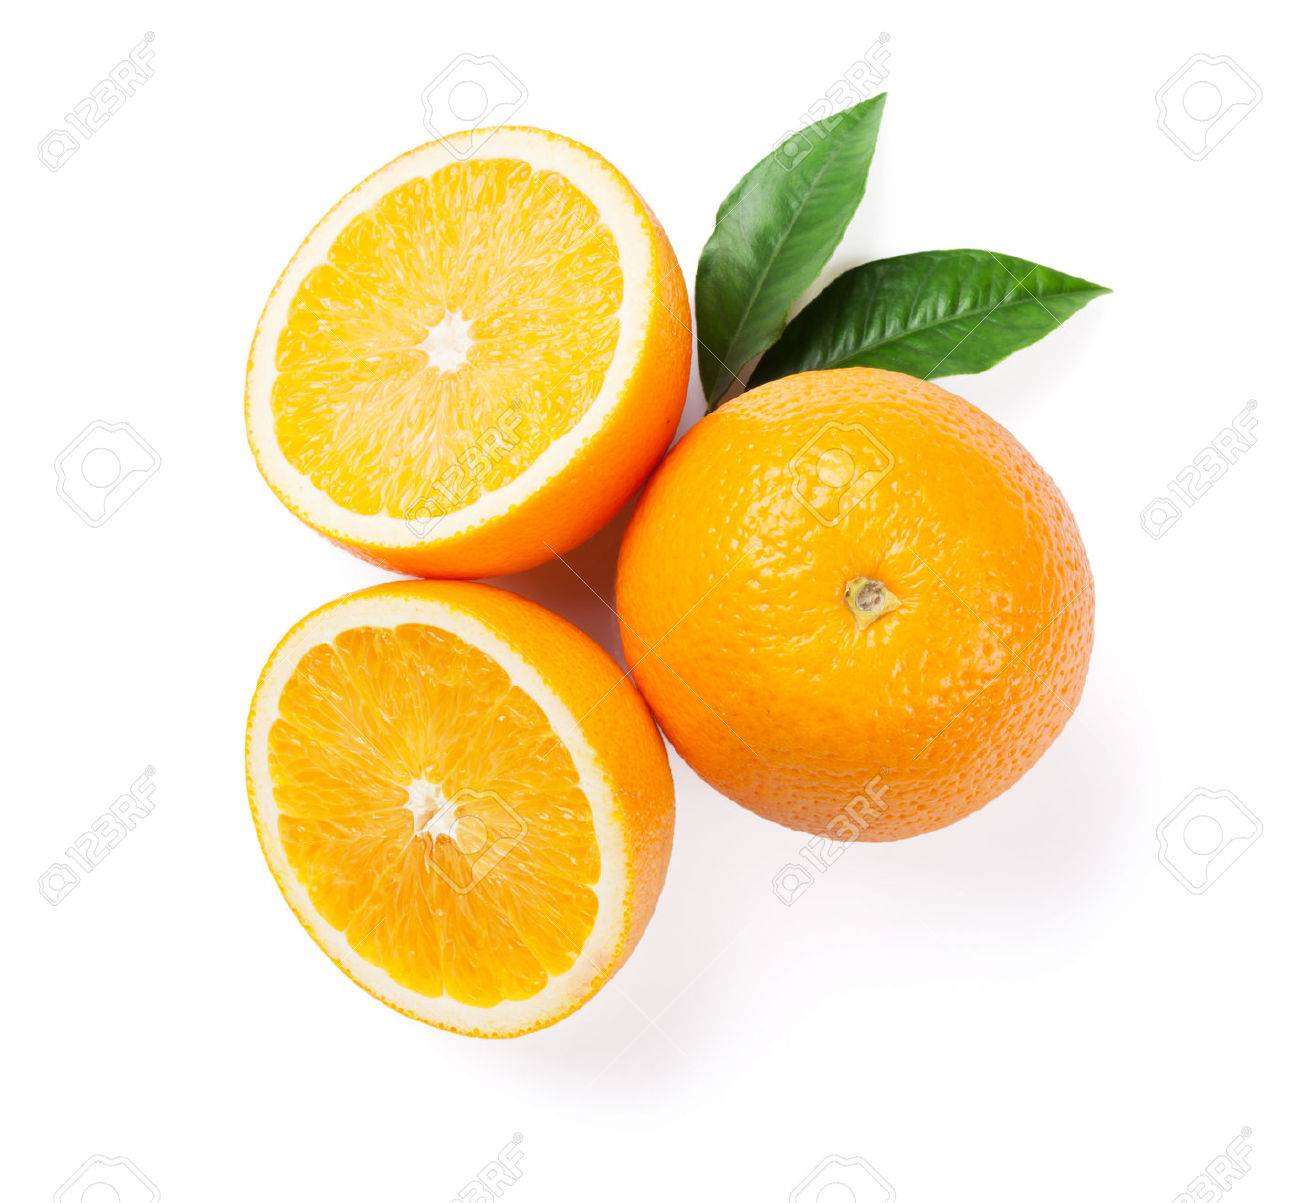 Fresh ripe oranges. Isolated on white background. Top view Standard-Bild - 55094617